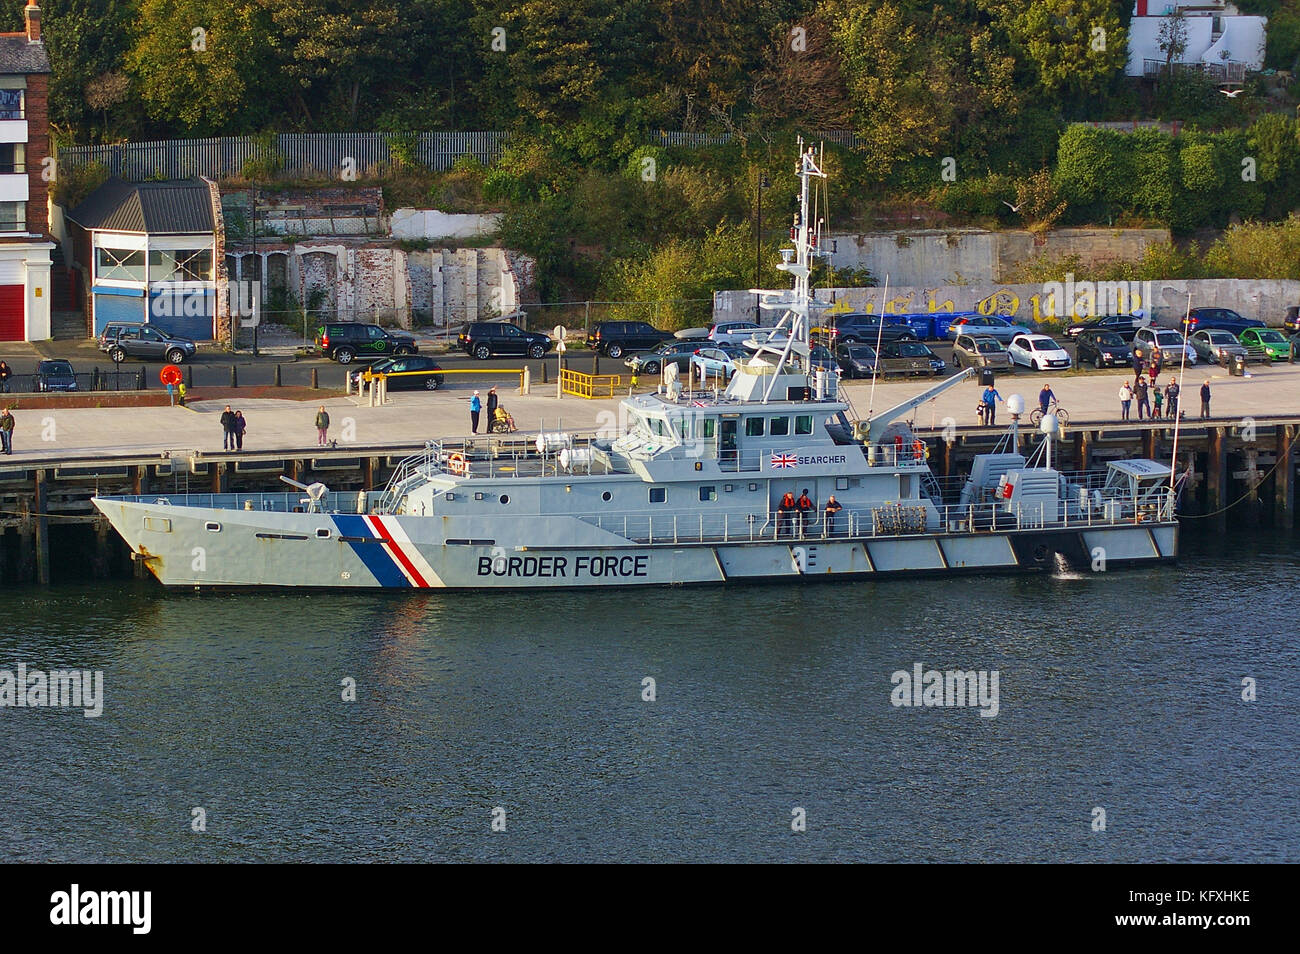 Newcastle, United Kingdom - October 5th, 2014 - UK border force cutter HMC Searcher at her moorings Stock Photo